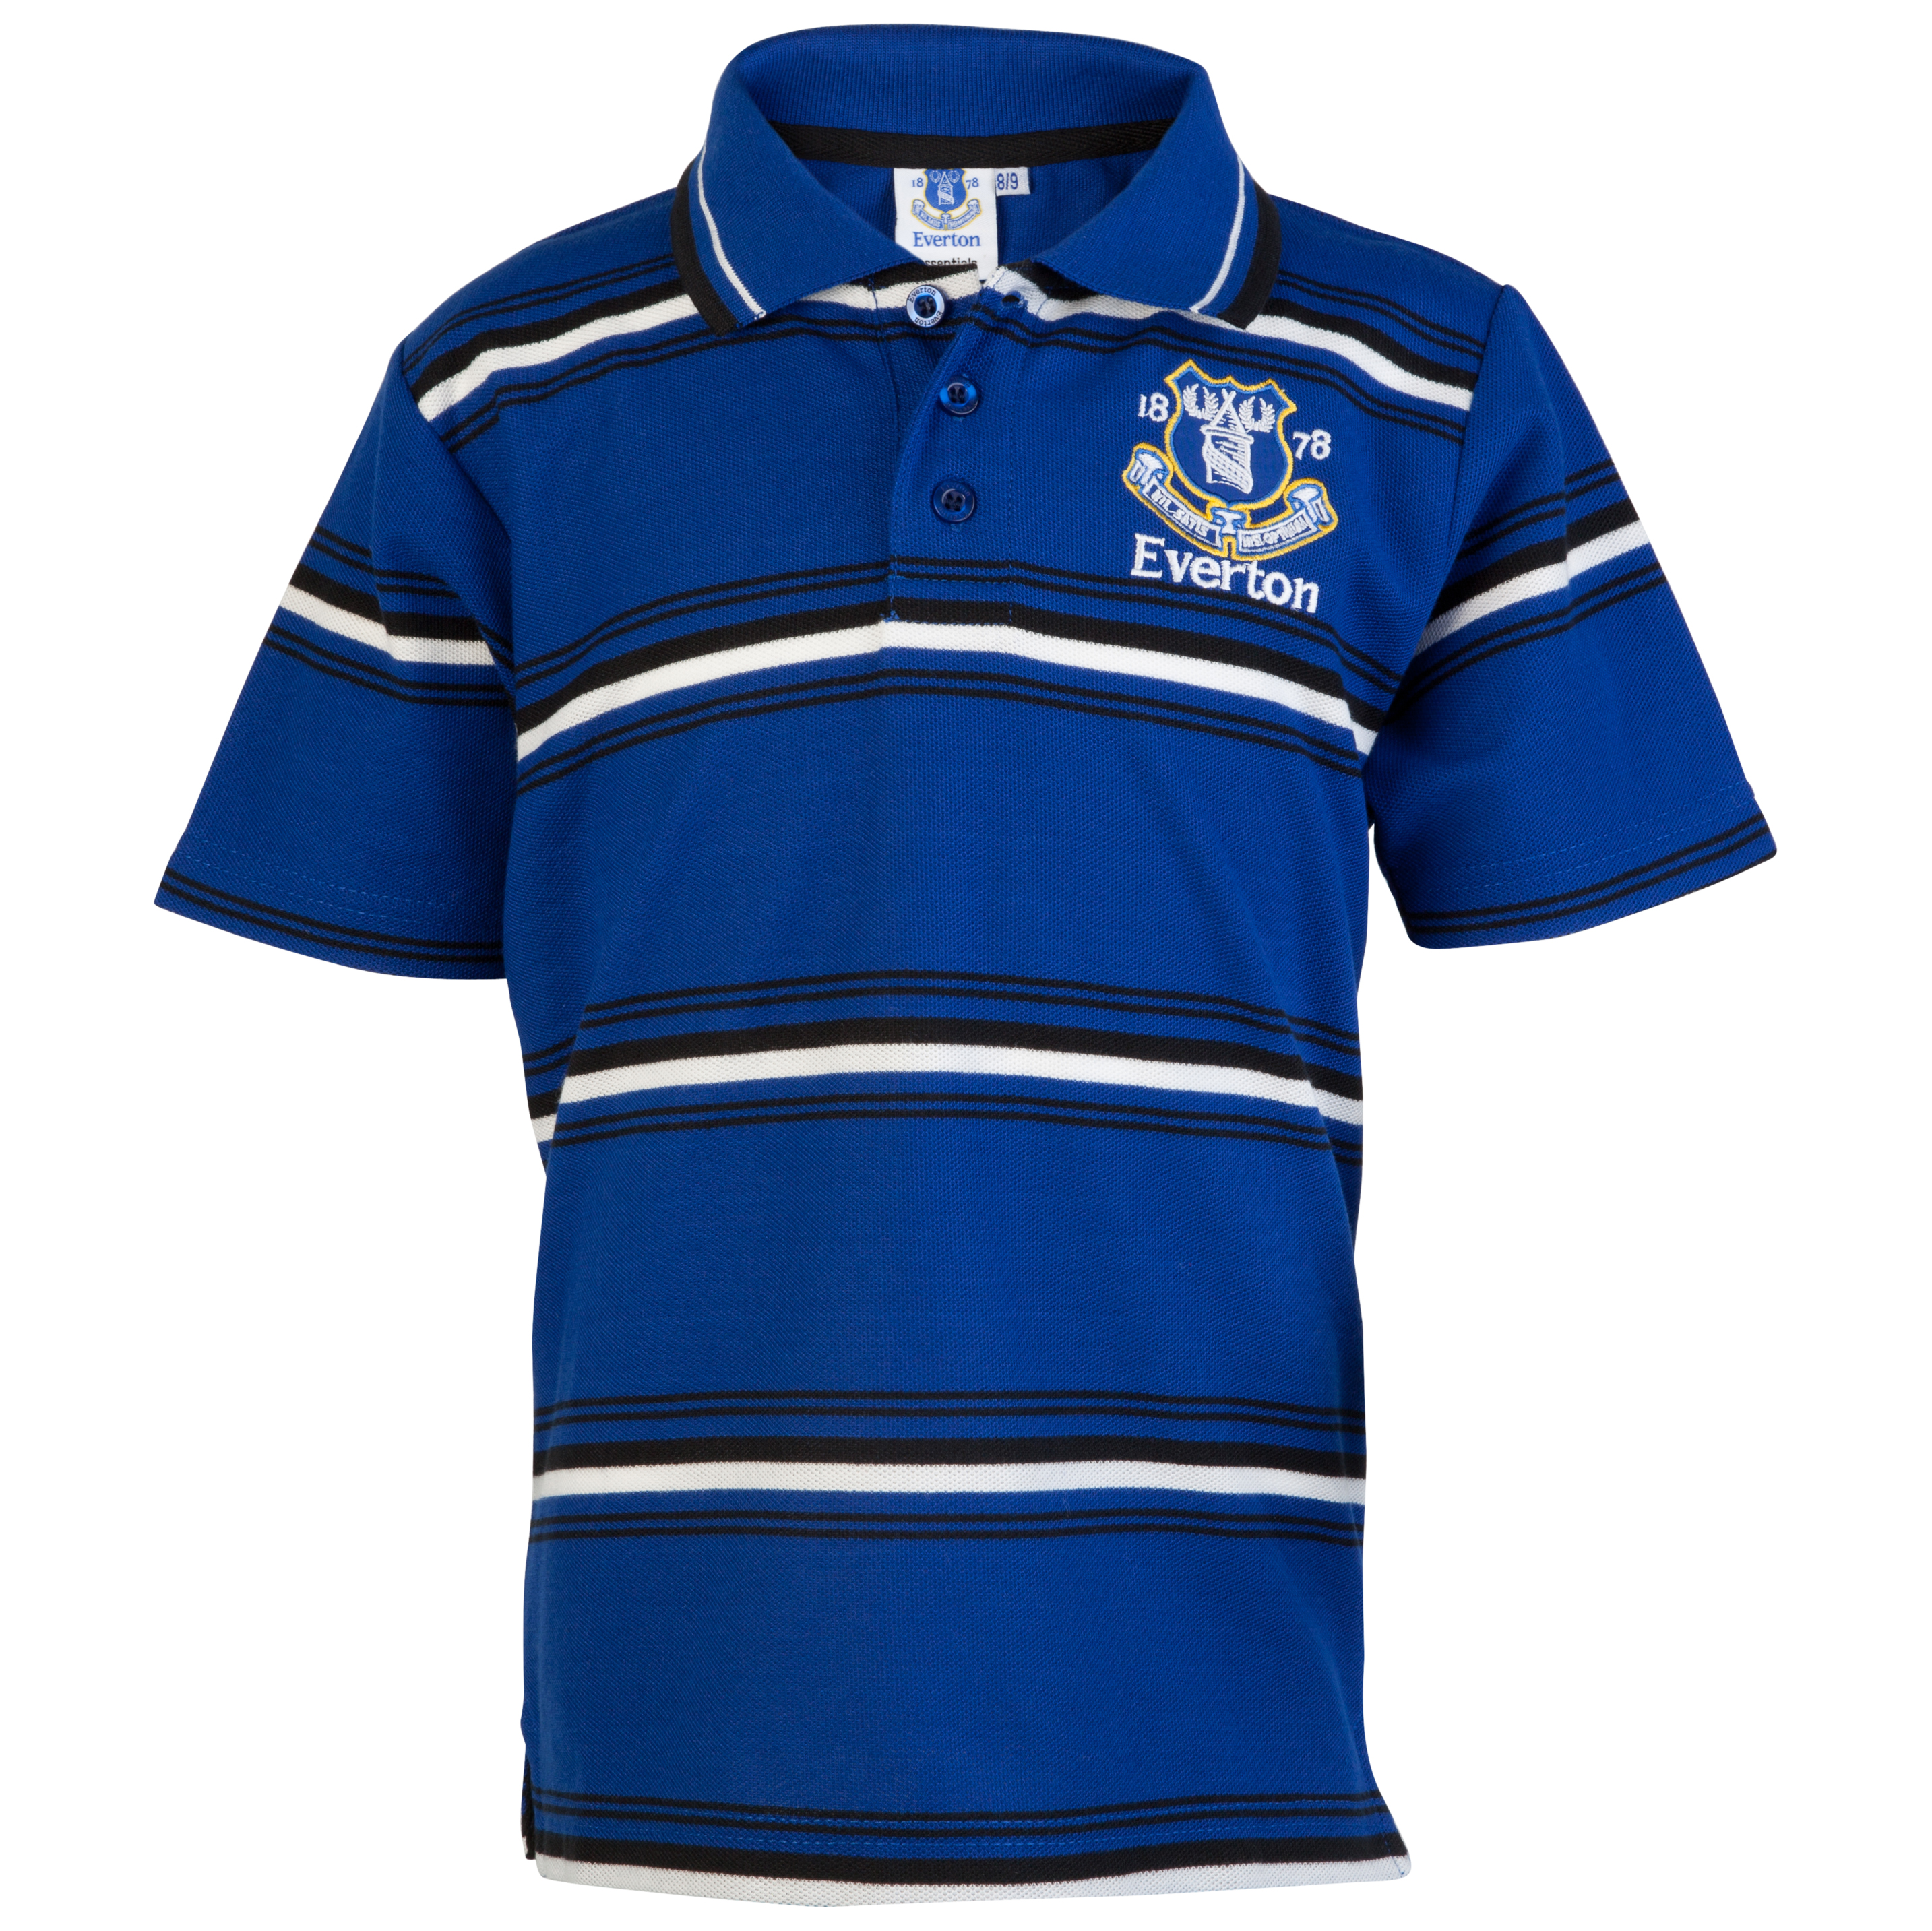 Everton Essential Possession Stripe Polo Top - Everton Blue - Older Boys